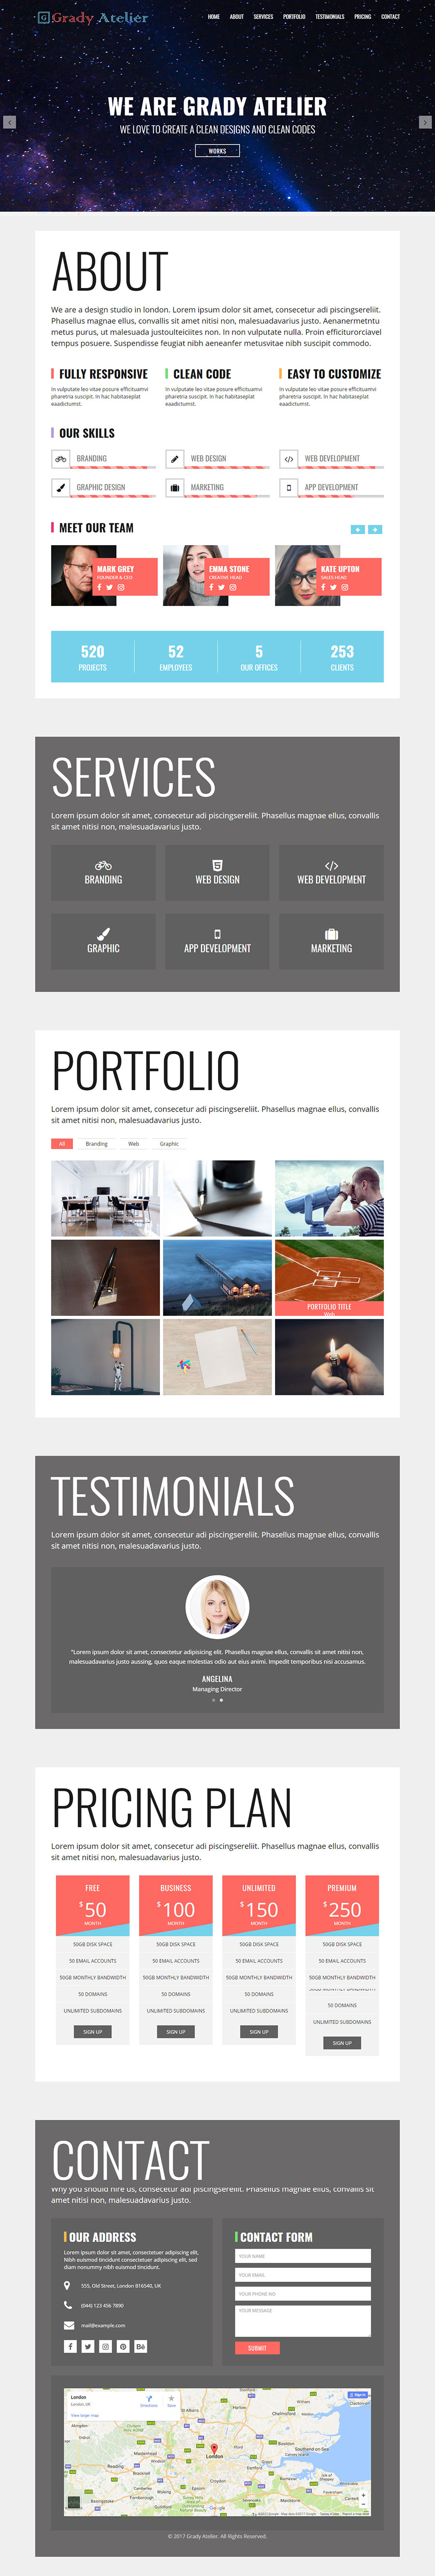 Grady Atelier - One Page Responsive HTML5 Template by Themesfolio ...